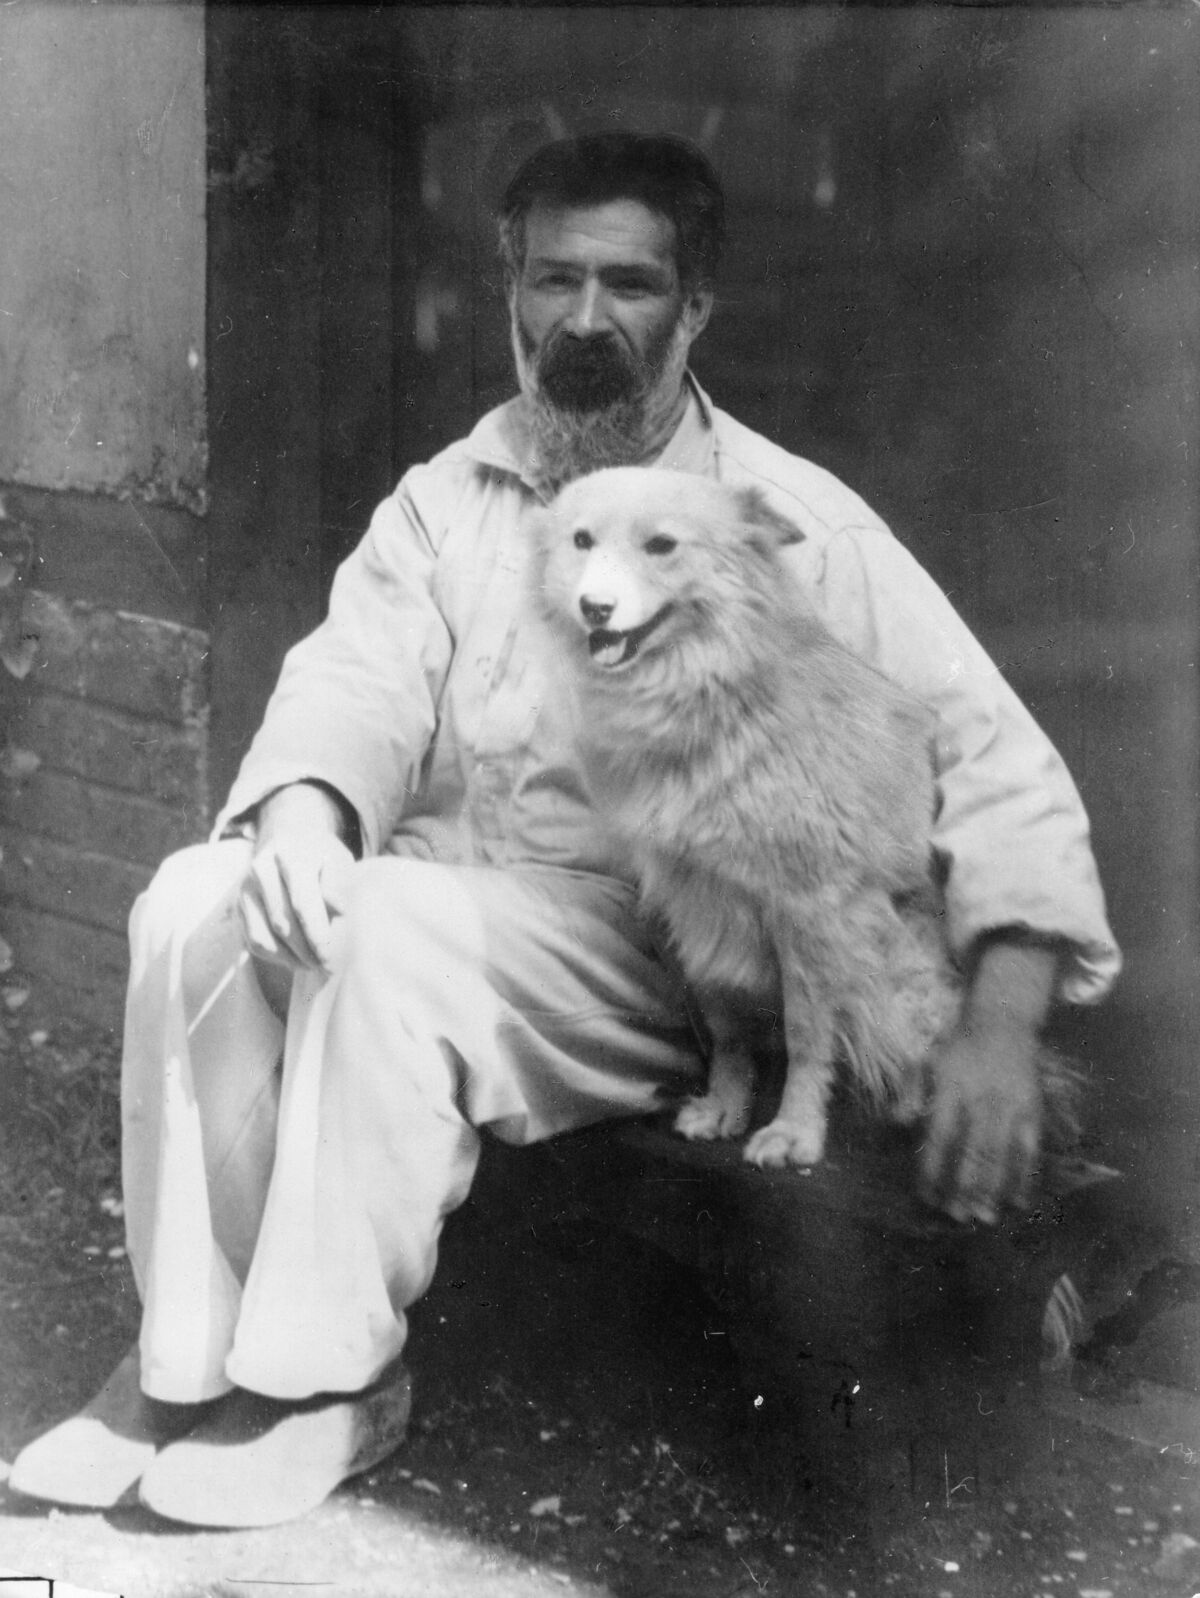 Constantin Brancusi with his dog Polaire, 192. Photo by ullstein bild/ullstein bild via Getty Images.